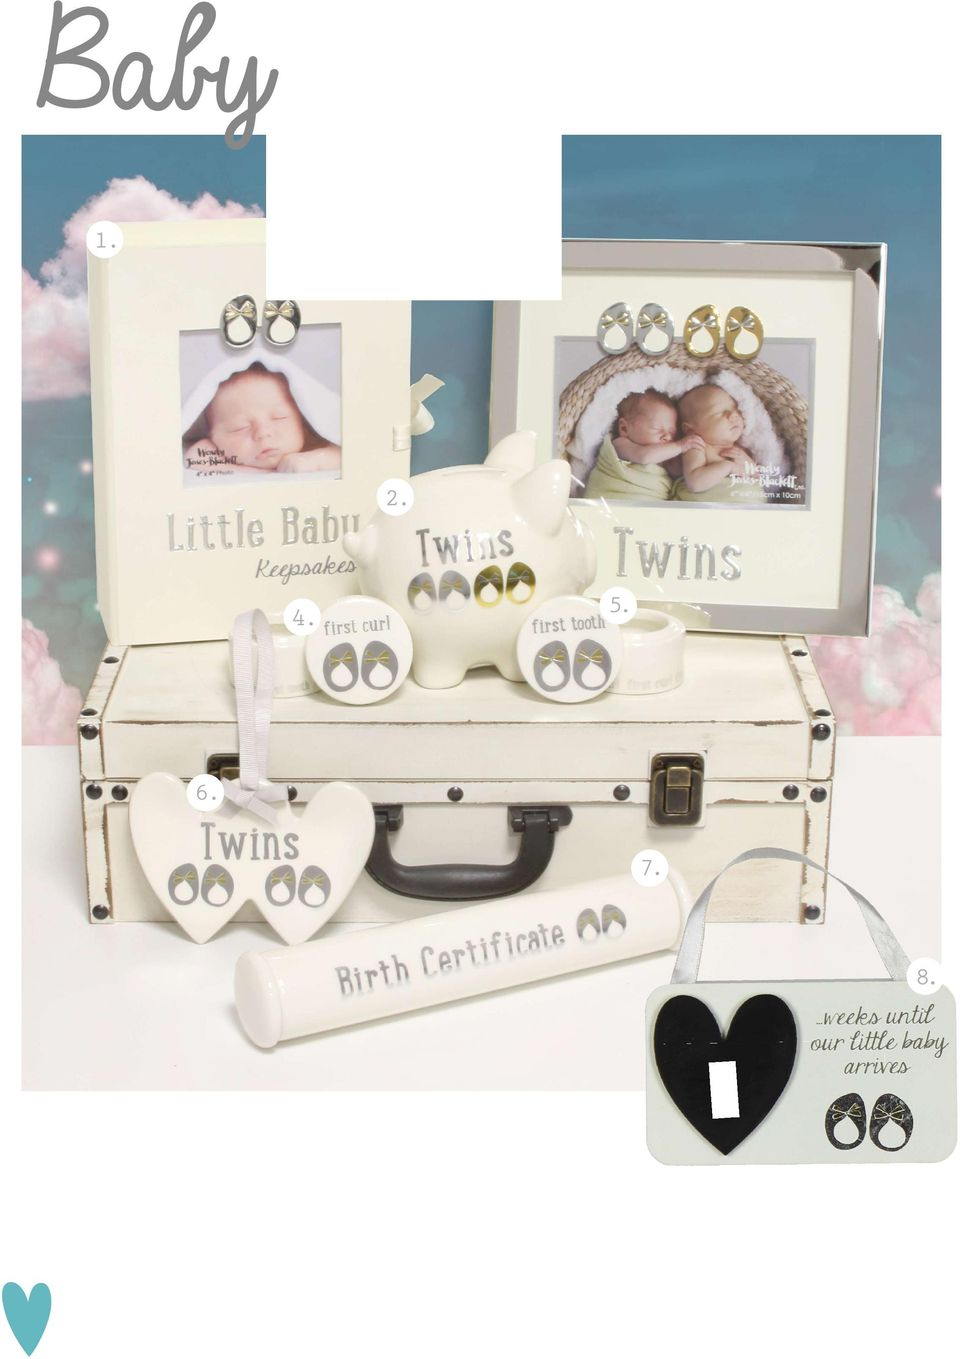 Twins Silver plated photo frame WJ219 ctn qty:18 6 x 4 21cm x 21cm x 2cm 4. Ceramic First Curl box WJ212 ctn qty:144 4cm x 5cm x 5cm 5.